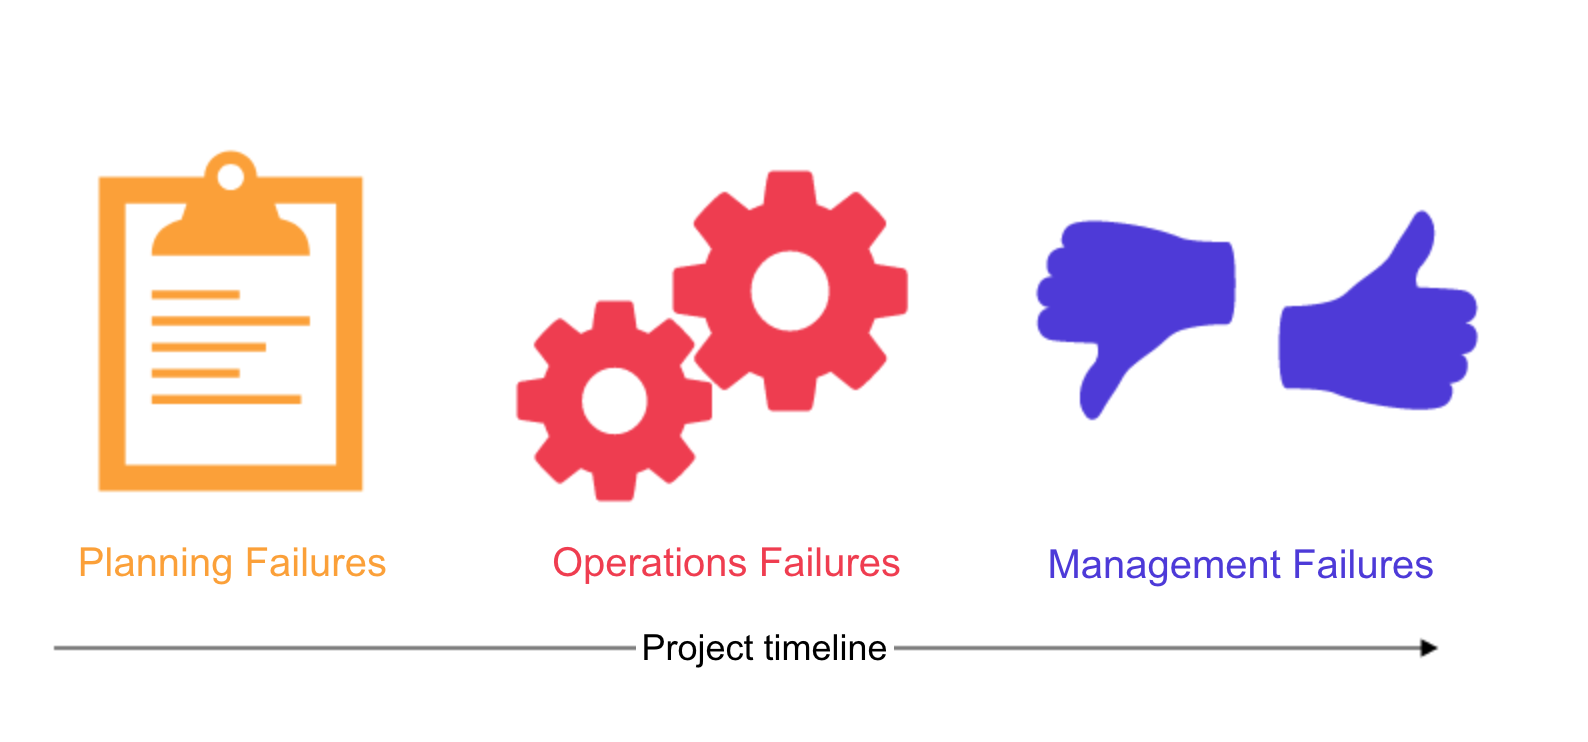 Diagram of the 3 Types of Project Failure along a Timeline